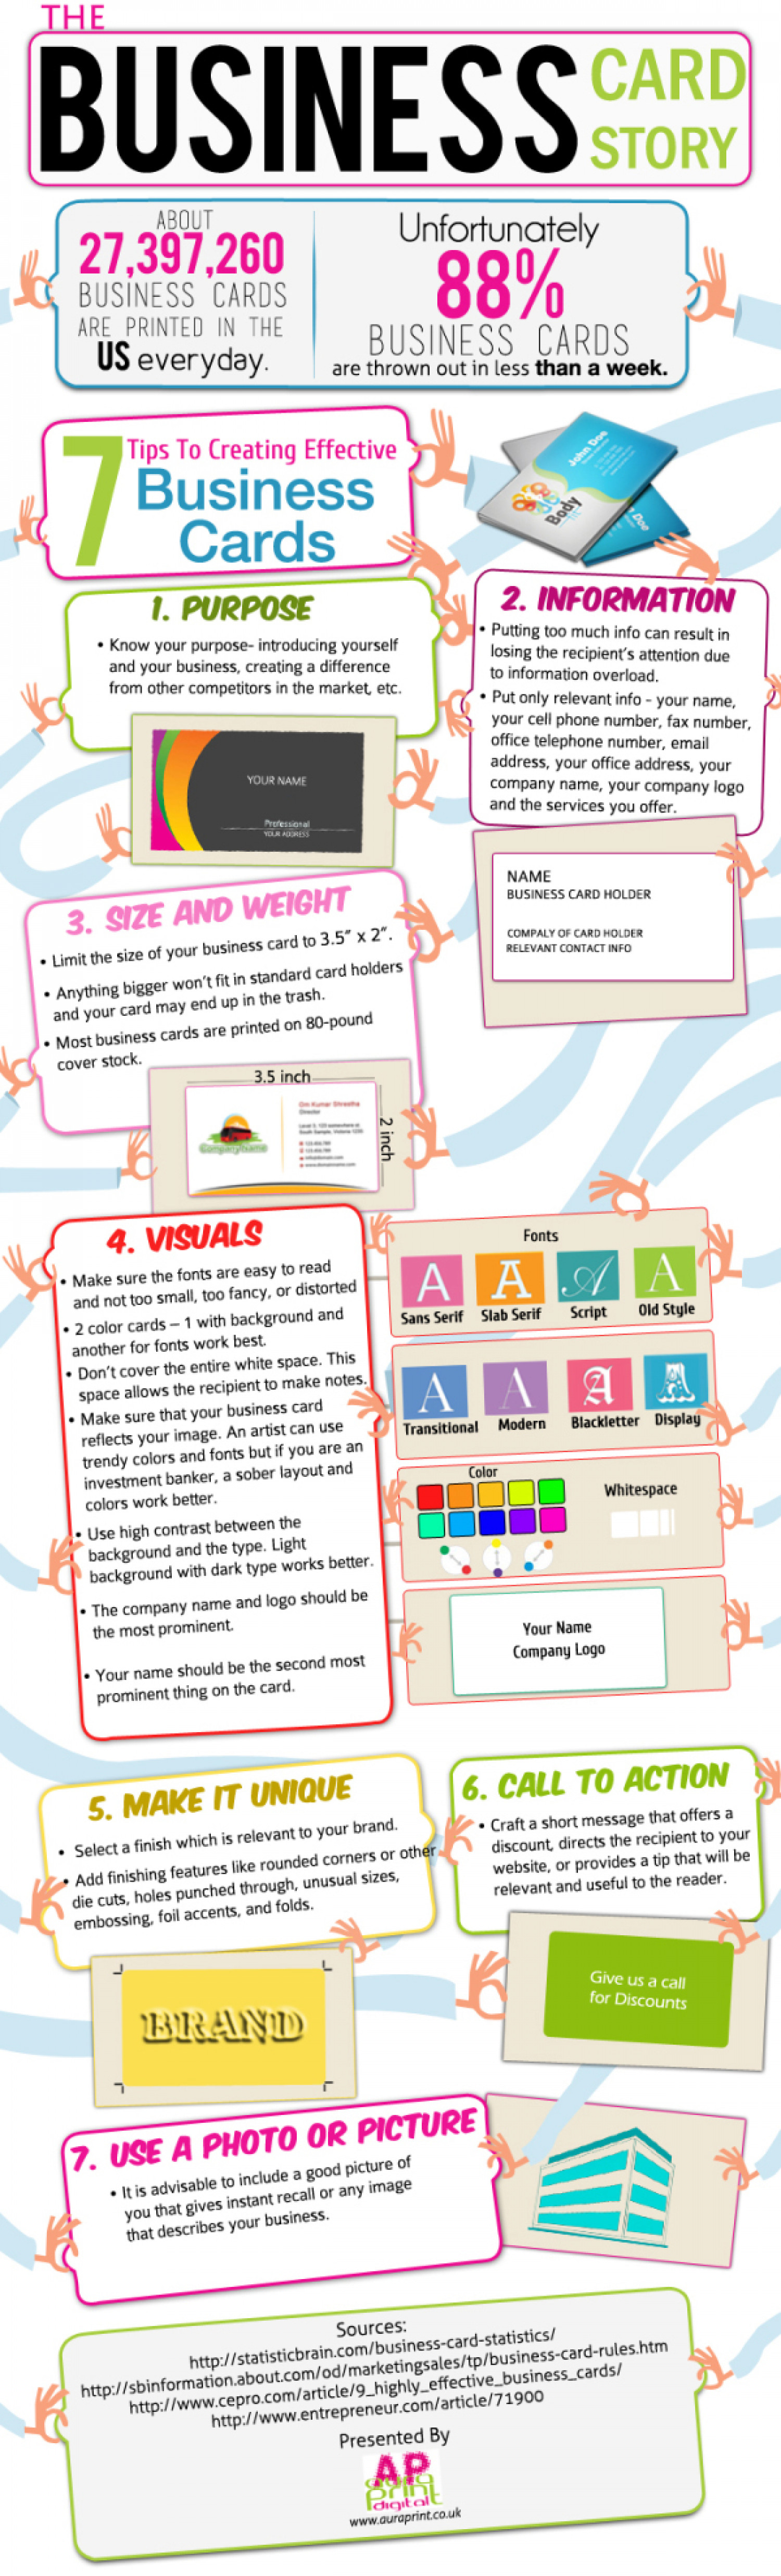 The Business Card Story Infographic